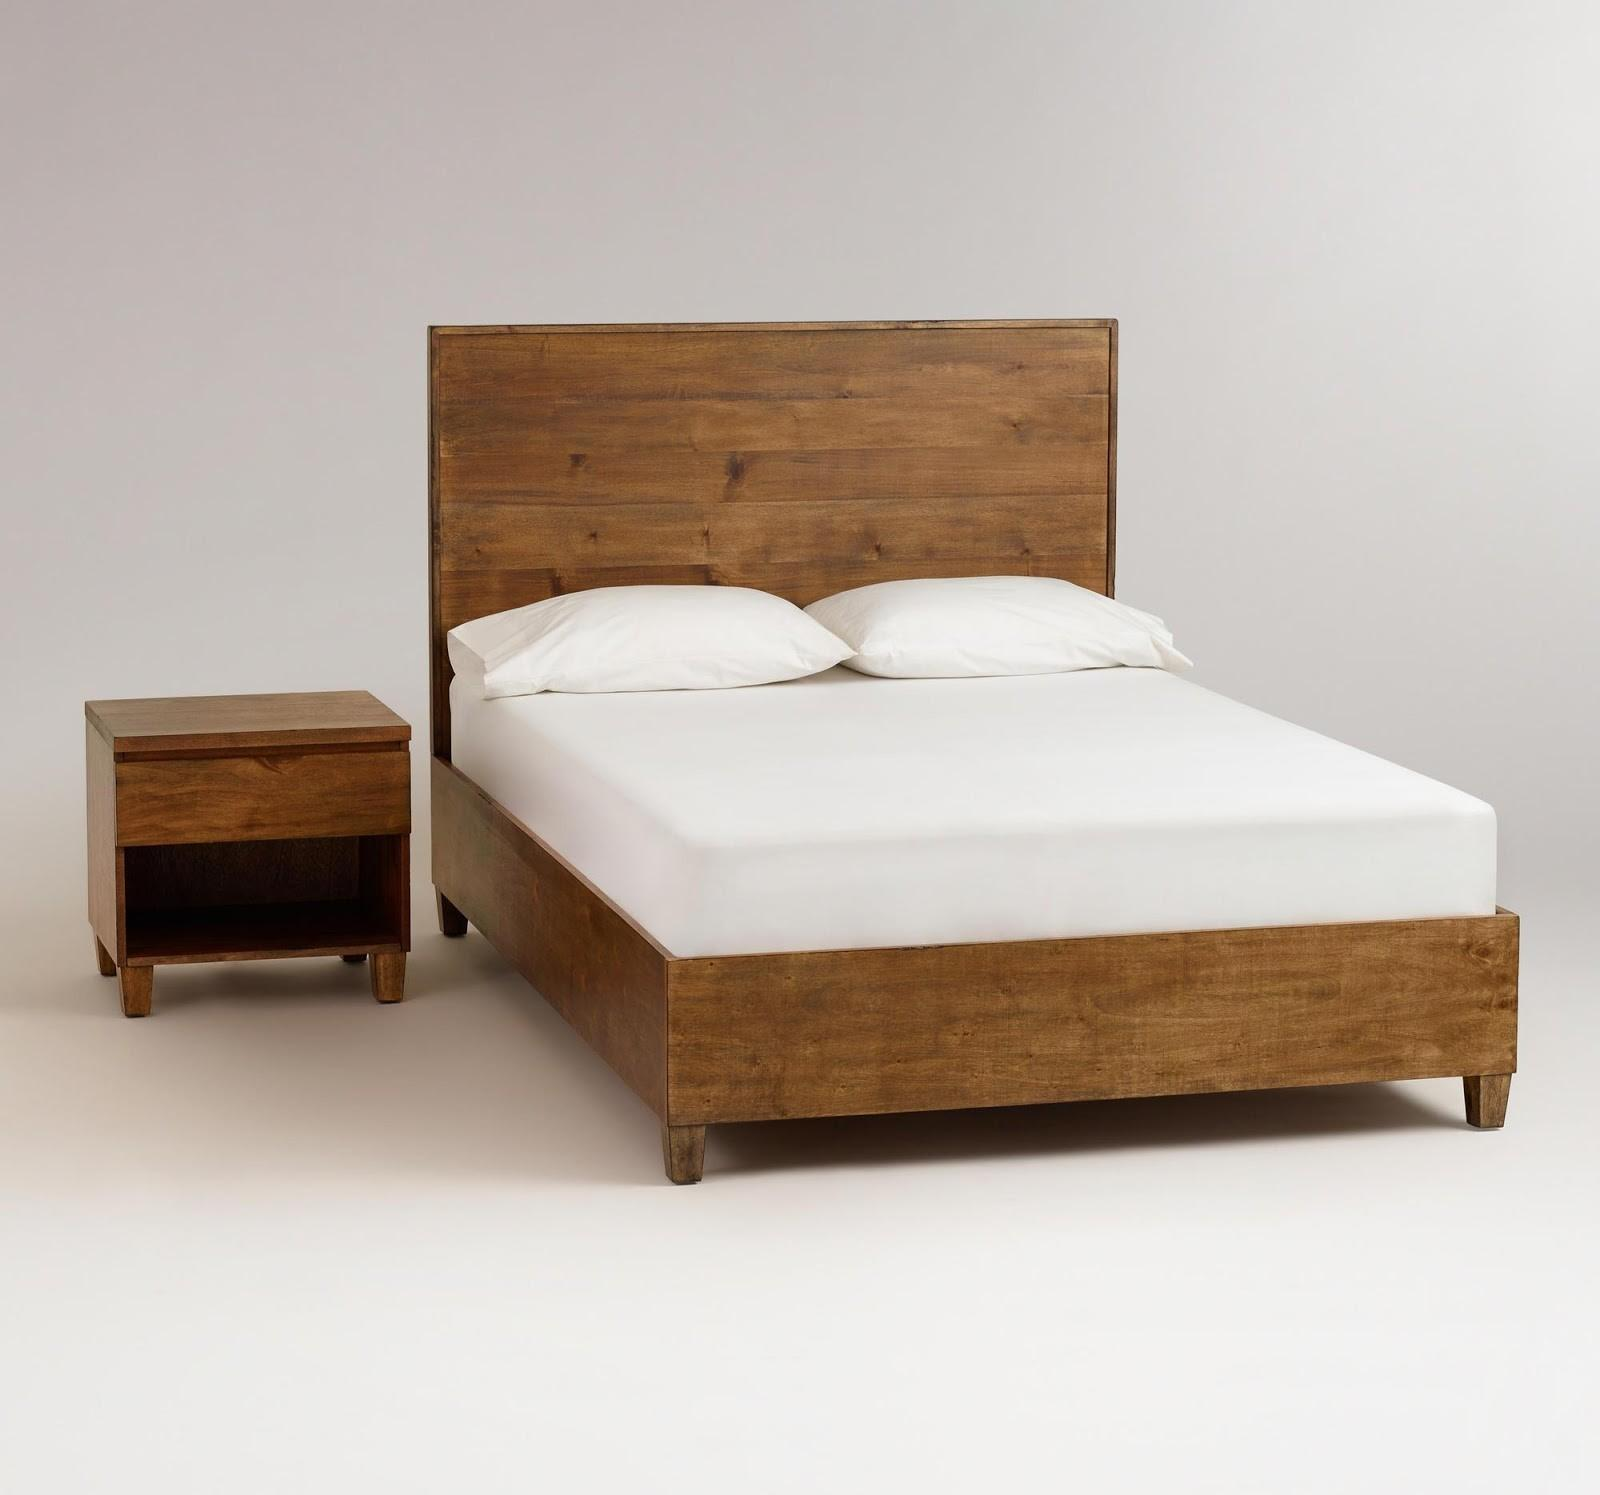 Home Priority Homey Feeling Rustic Bed Frames Ideas